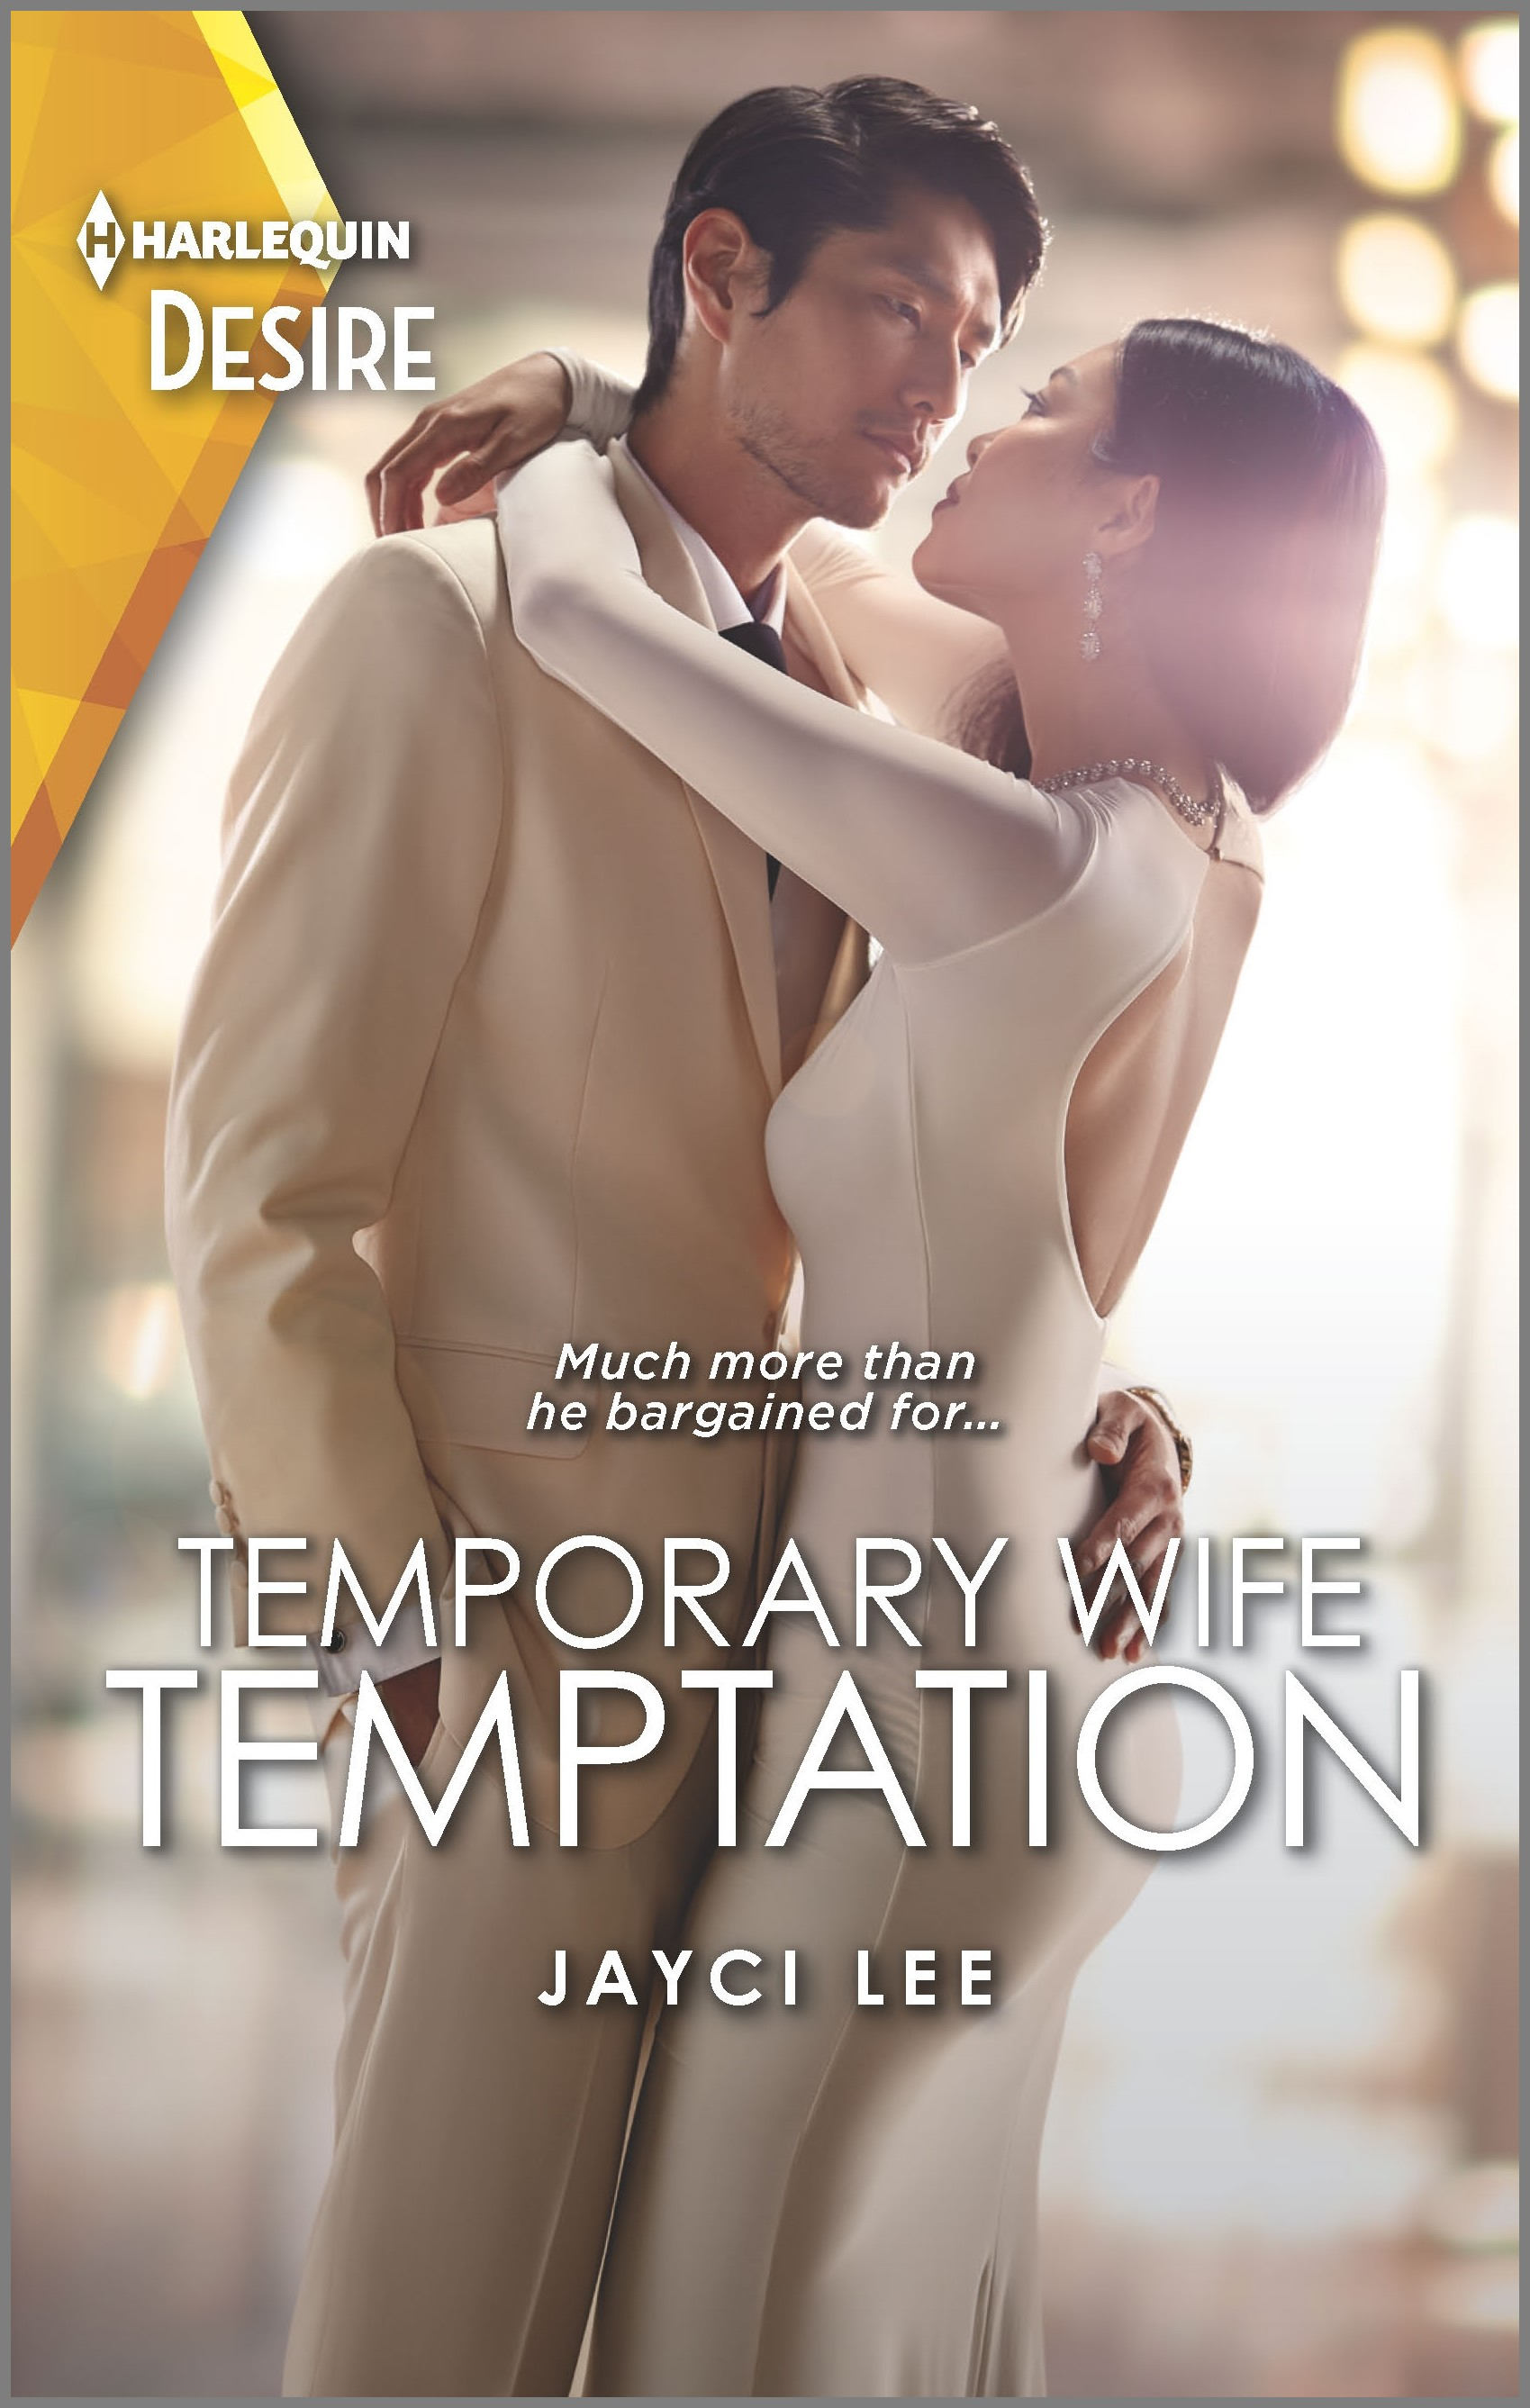 Temporary Wife Temptation [electronic resource]